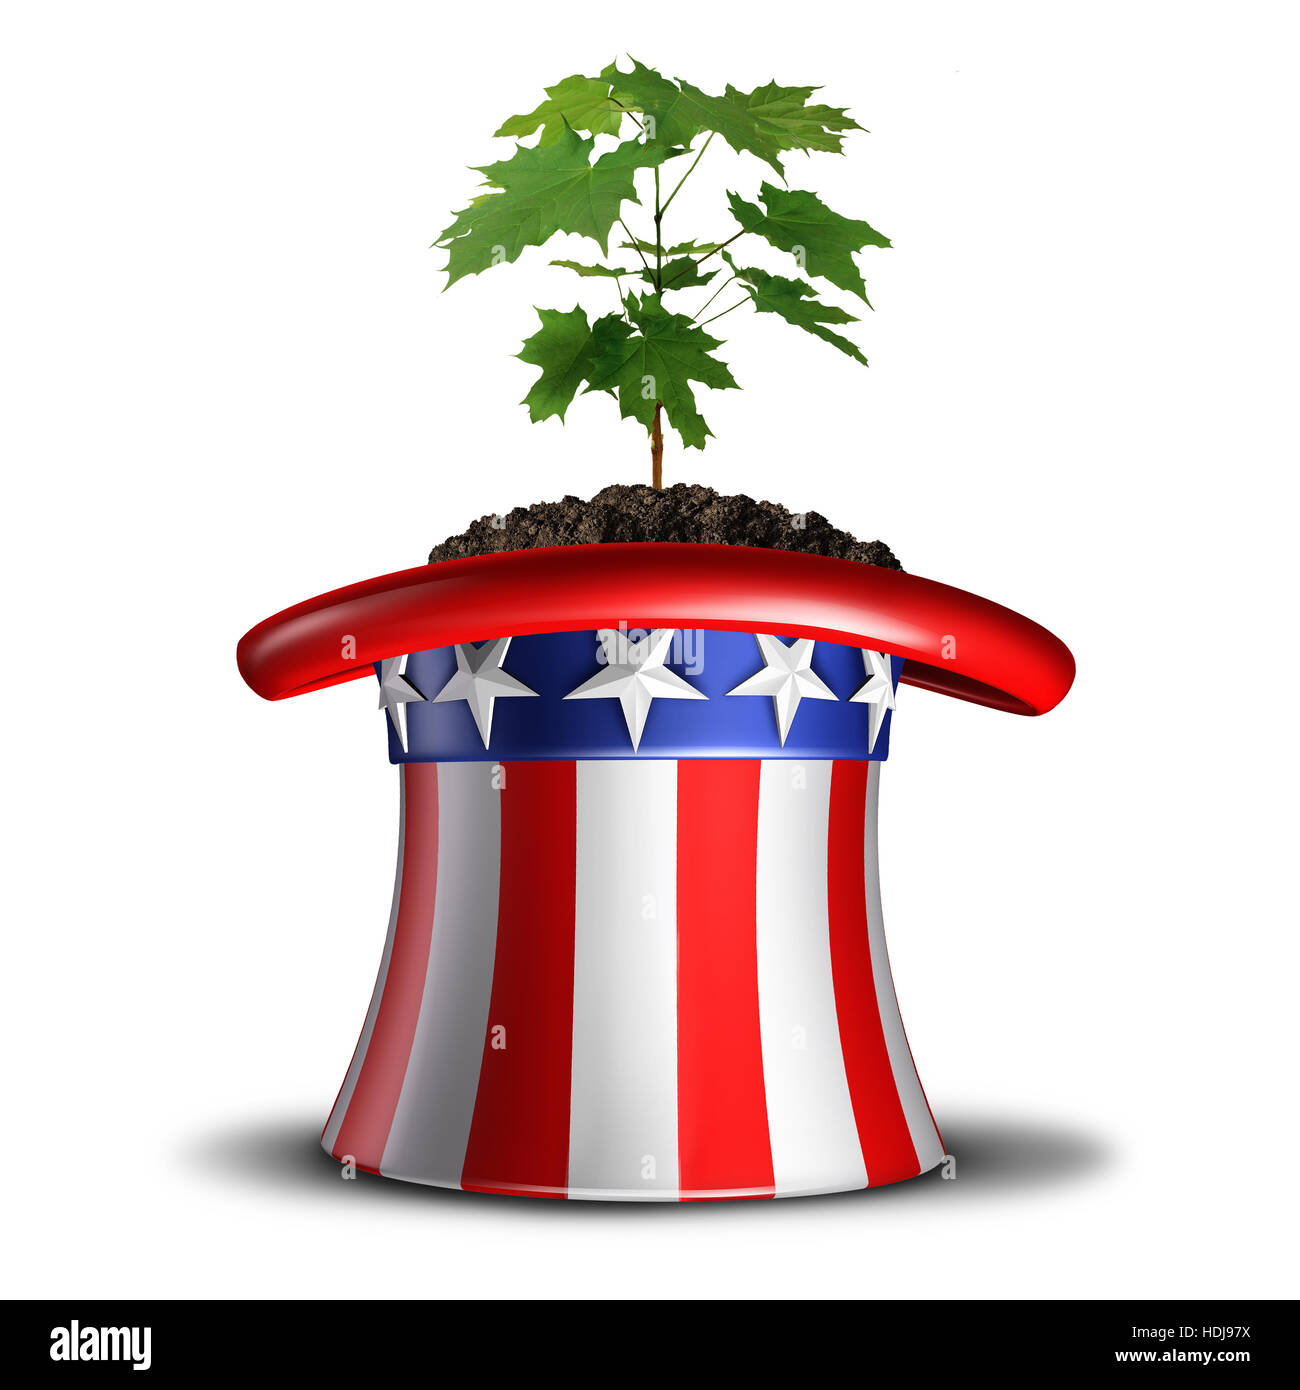 Concept of American growth and invest in the USA idea or social security in america symbol as a tree sapling growing - Stock Image